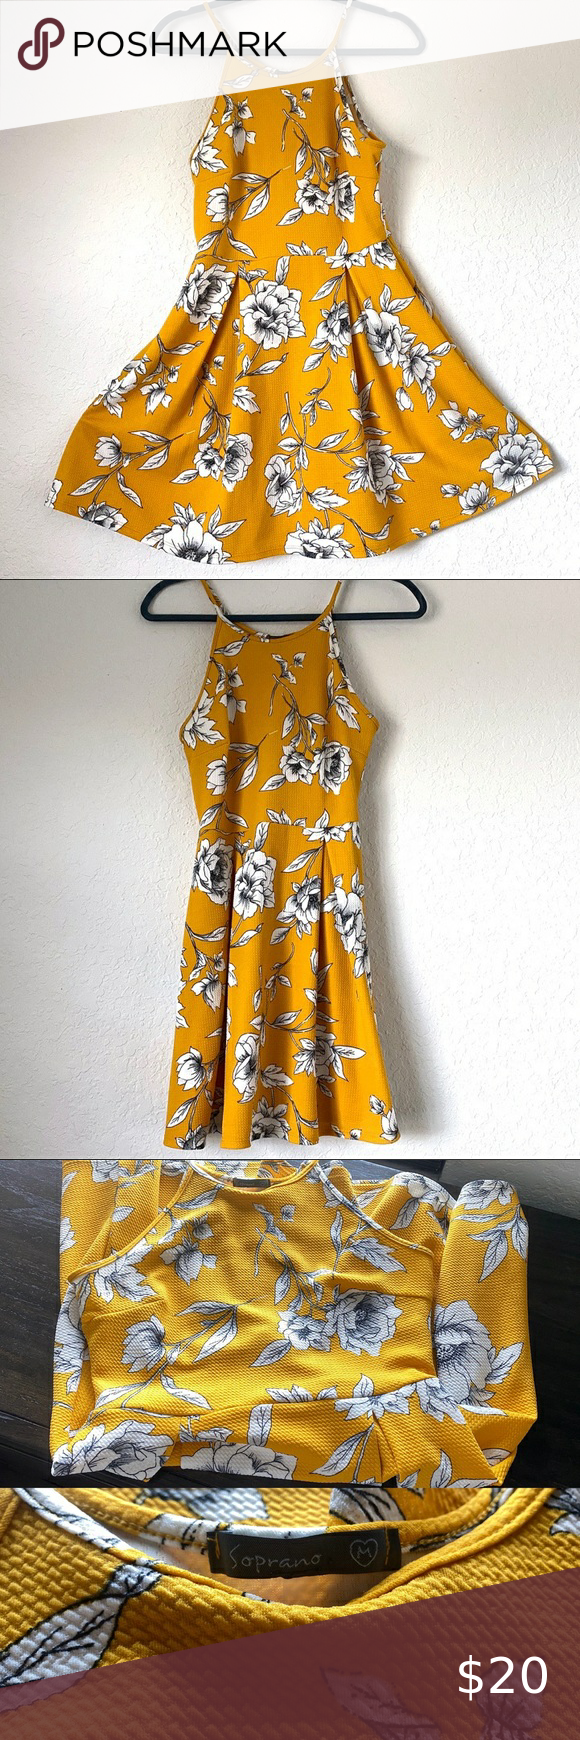 Yellow Floral A Line Dress Vibrant Mustard Yellow A Line Summer Dress Stretchy Breathable And Comfortable Wo Summer Dresses A Line Dress Floral Aline Dress [ 1740 x 580 Pixel ]